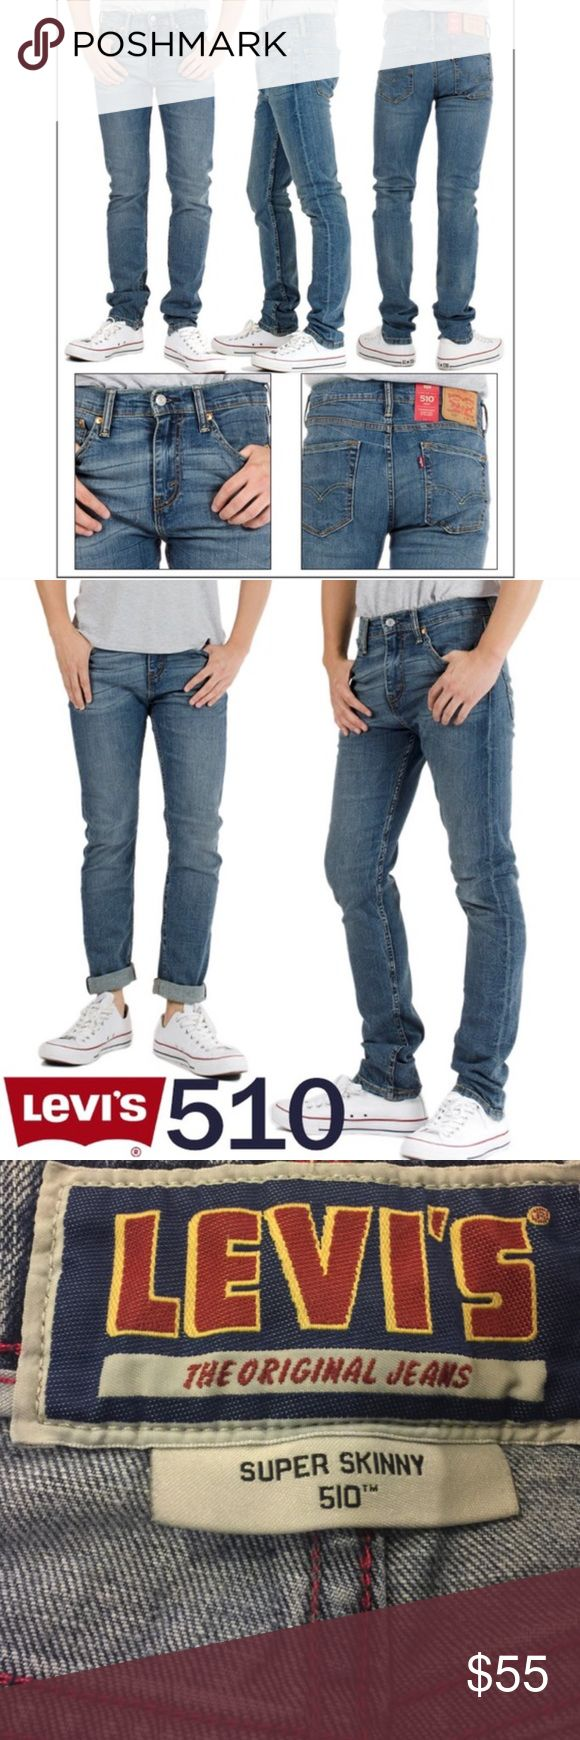 Men's Levi's 510 Super Skinny Perfectly broken in super skinny Levi's jeans in a light/dark combo wash. Waist 30 / Length 30. Levi's Jeans Skinny